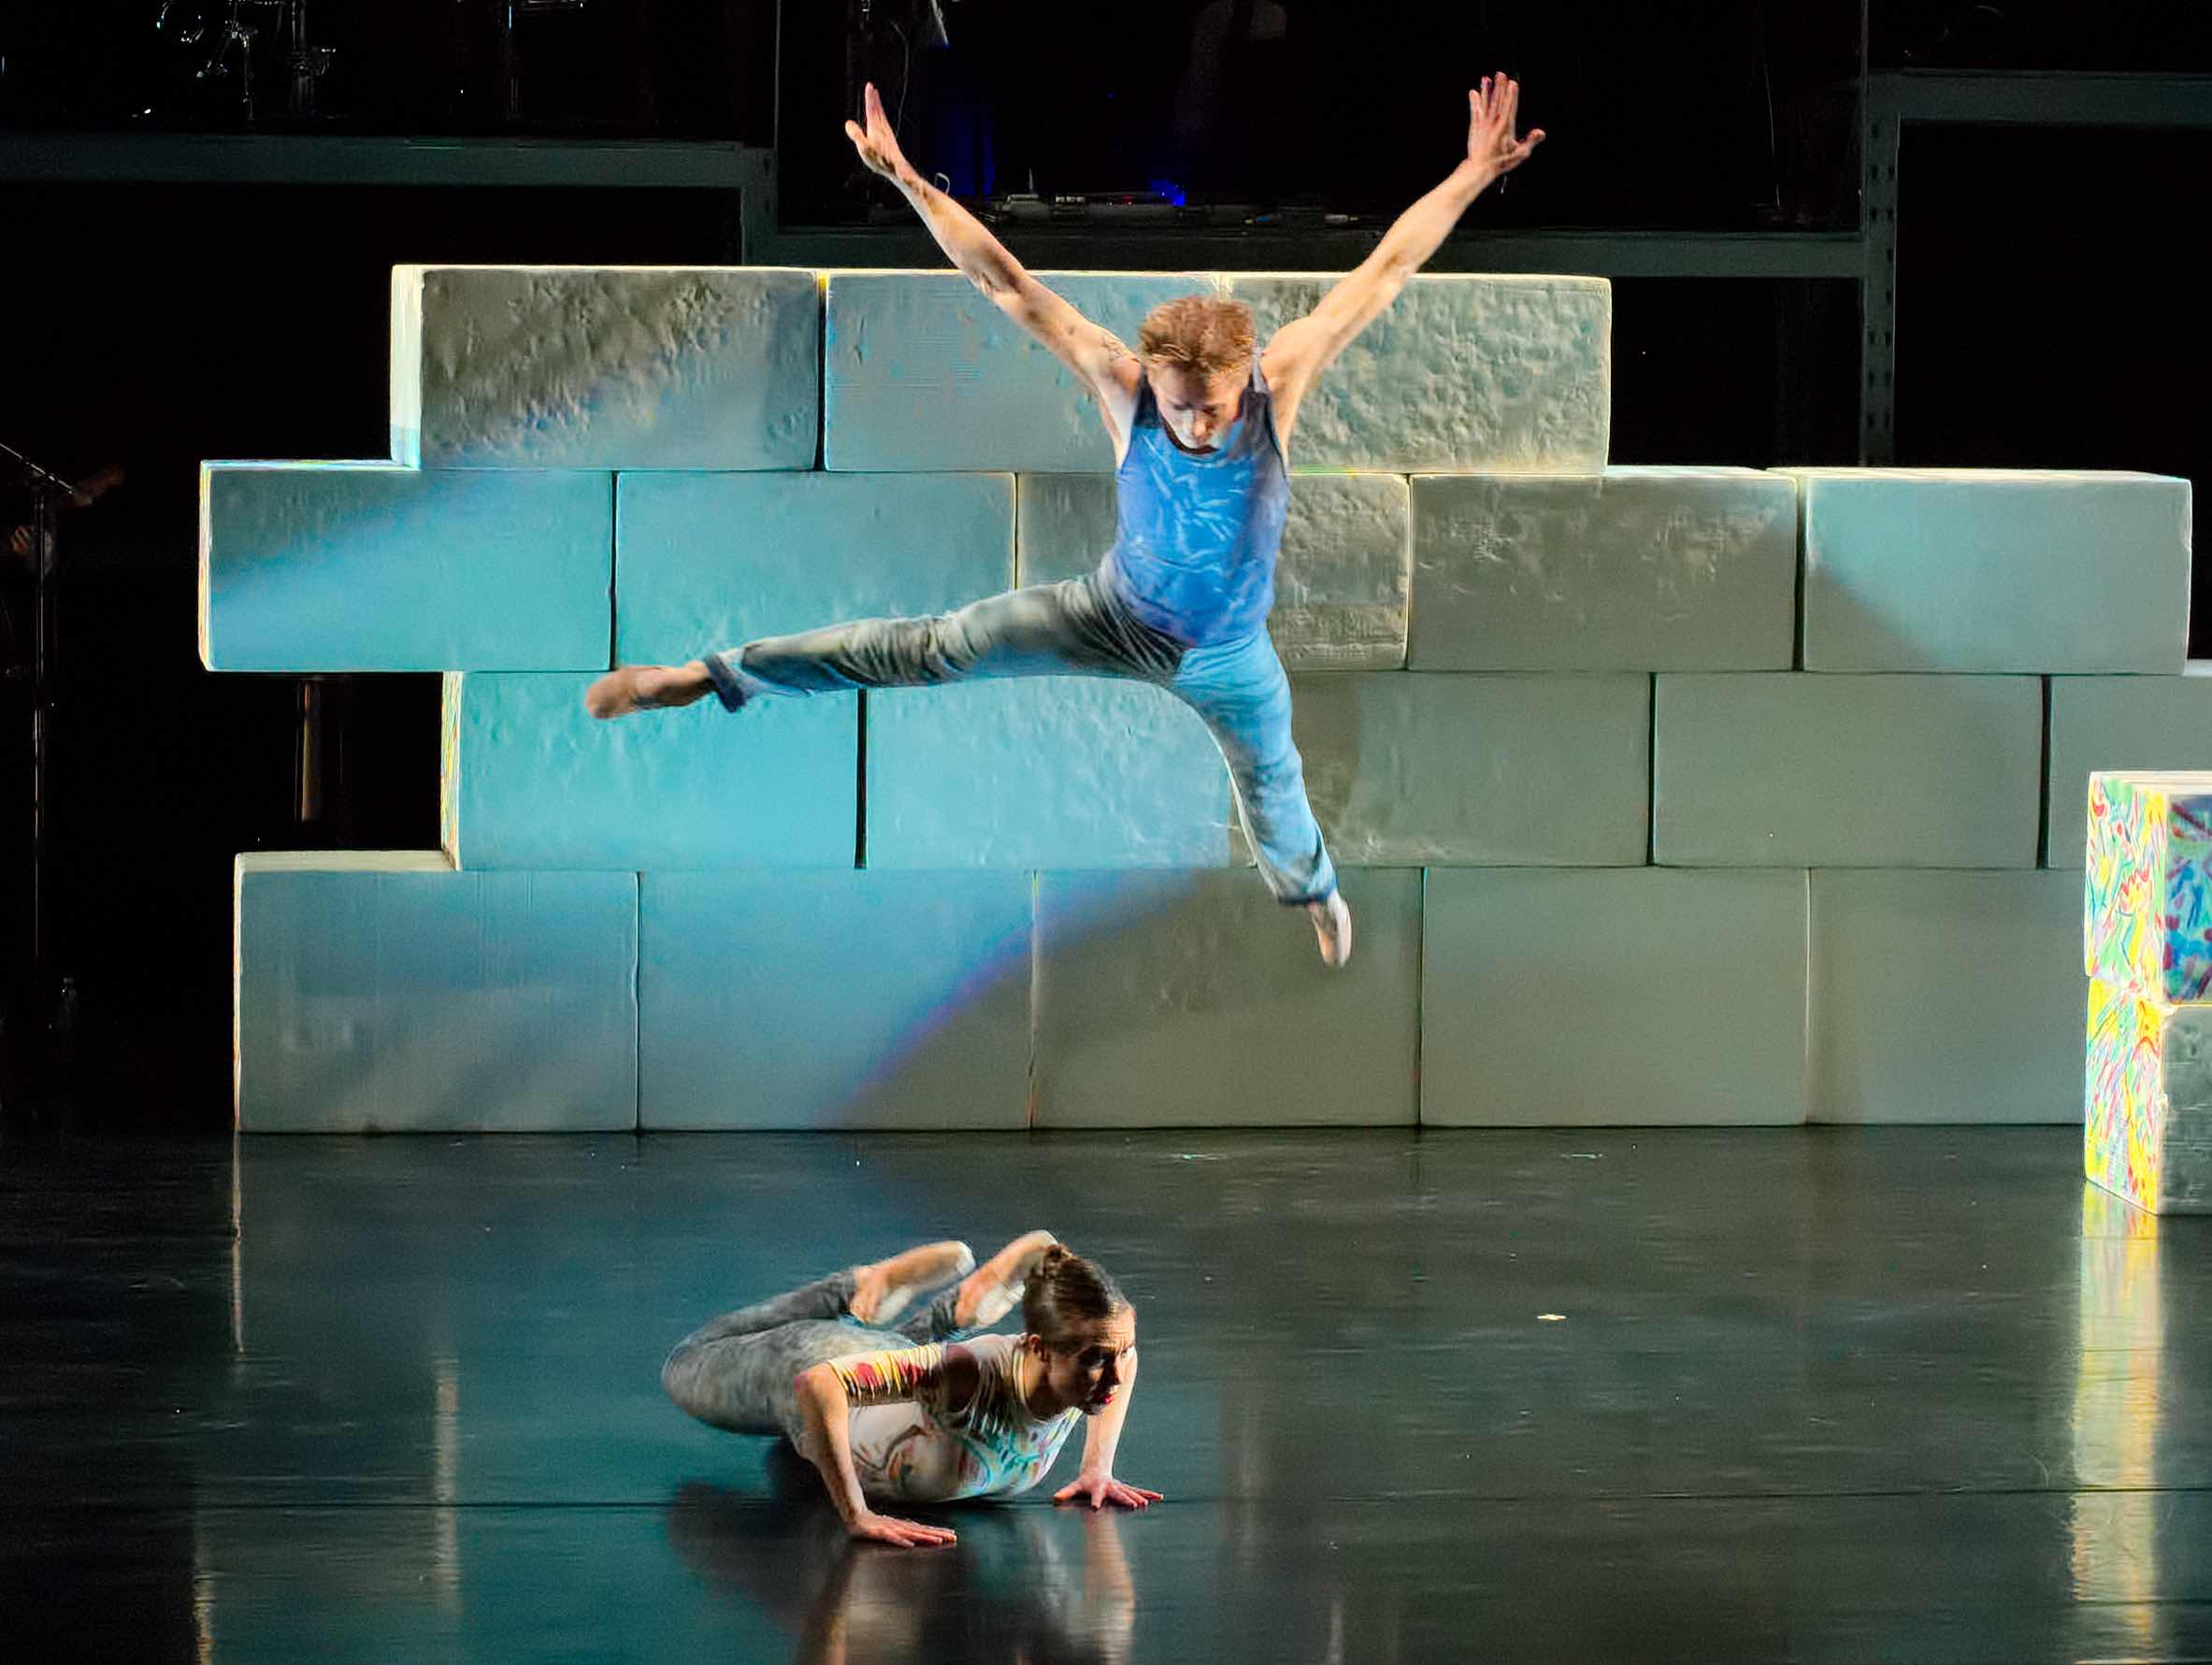 One dancer jumping over another in a scene from The Wall: A Rock Ballet